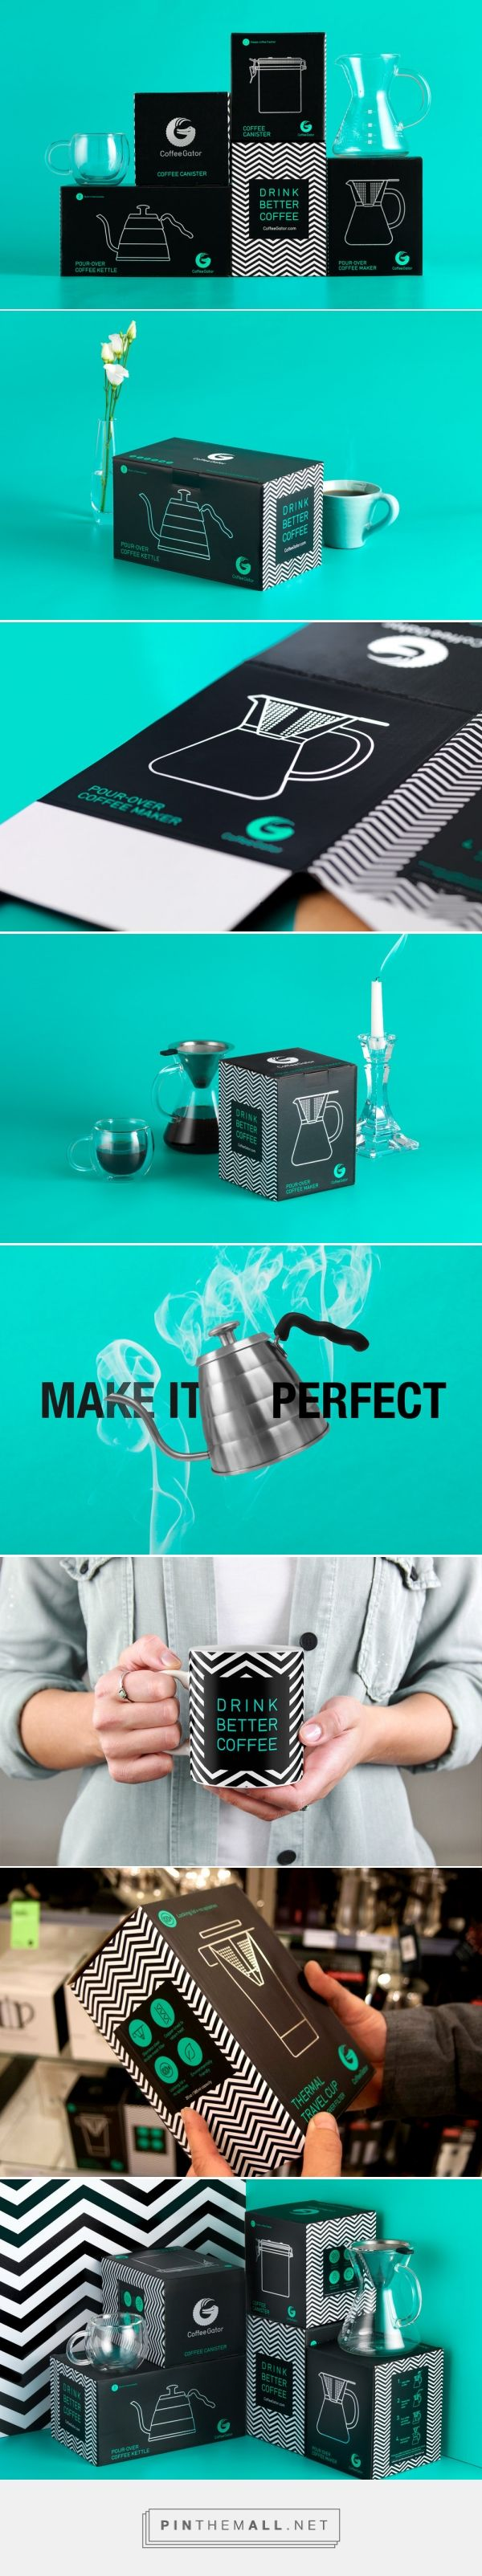 Drink Better Coffee With CoffeeGator — The Dieline | Packaging & Branding Design & Innovation News... - a grouped images picture - Pin Them All